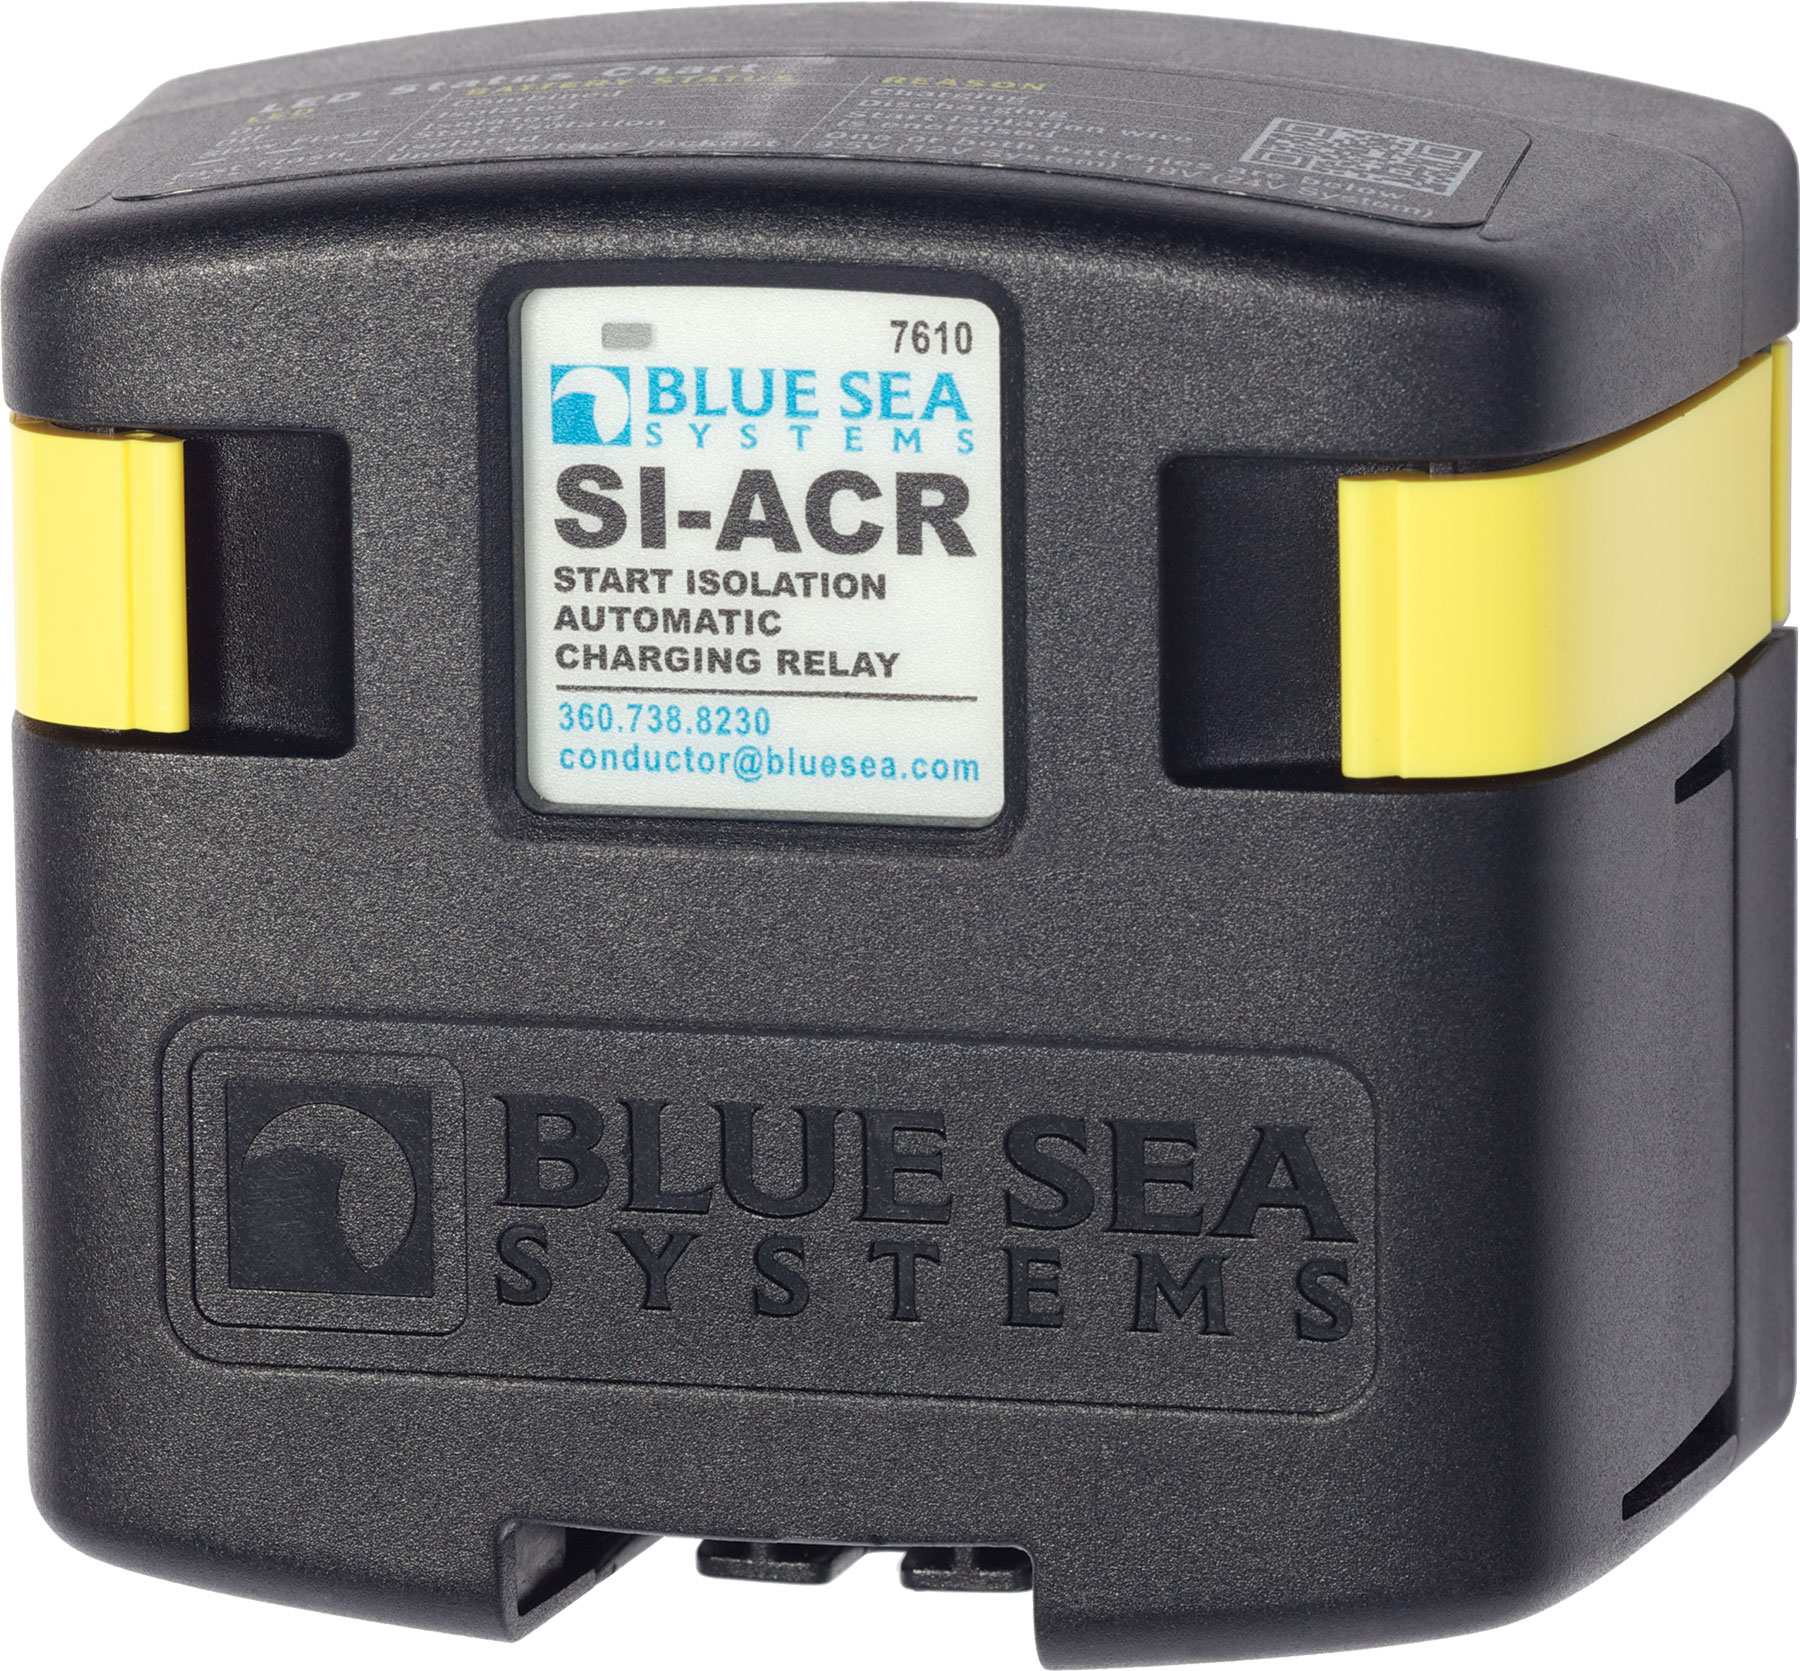 blue sea mini add a battery wiring diagram bcm 50 si acr automatic charging relay 12 24v dc 120a systems product image